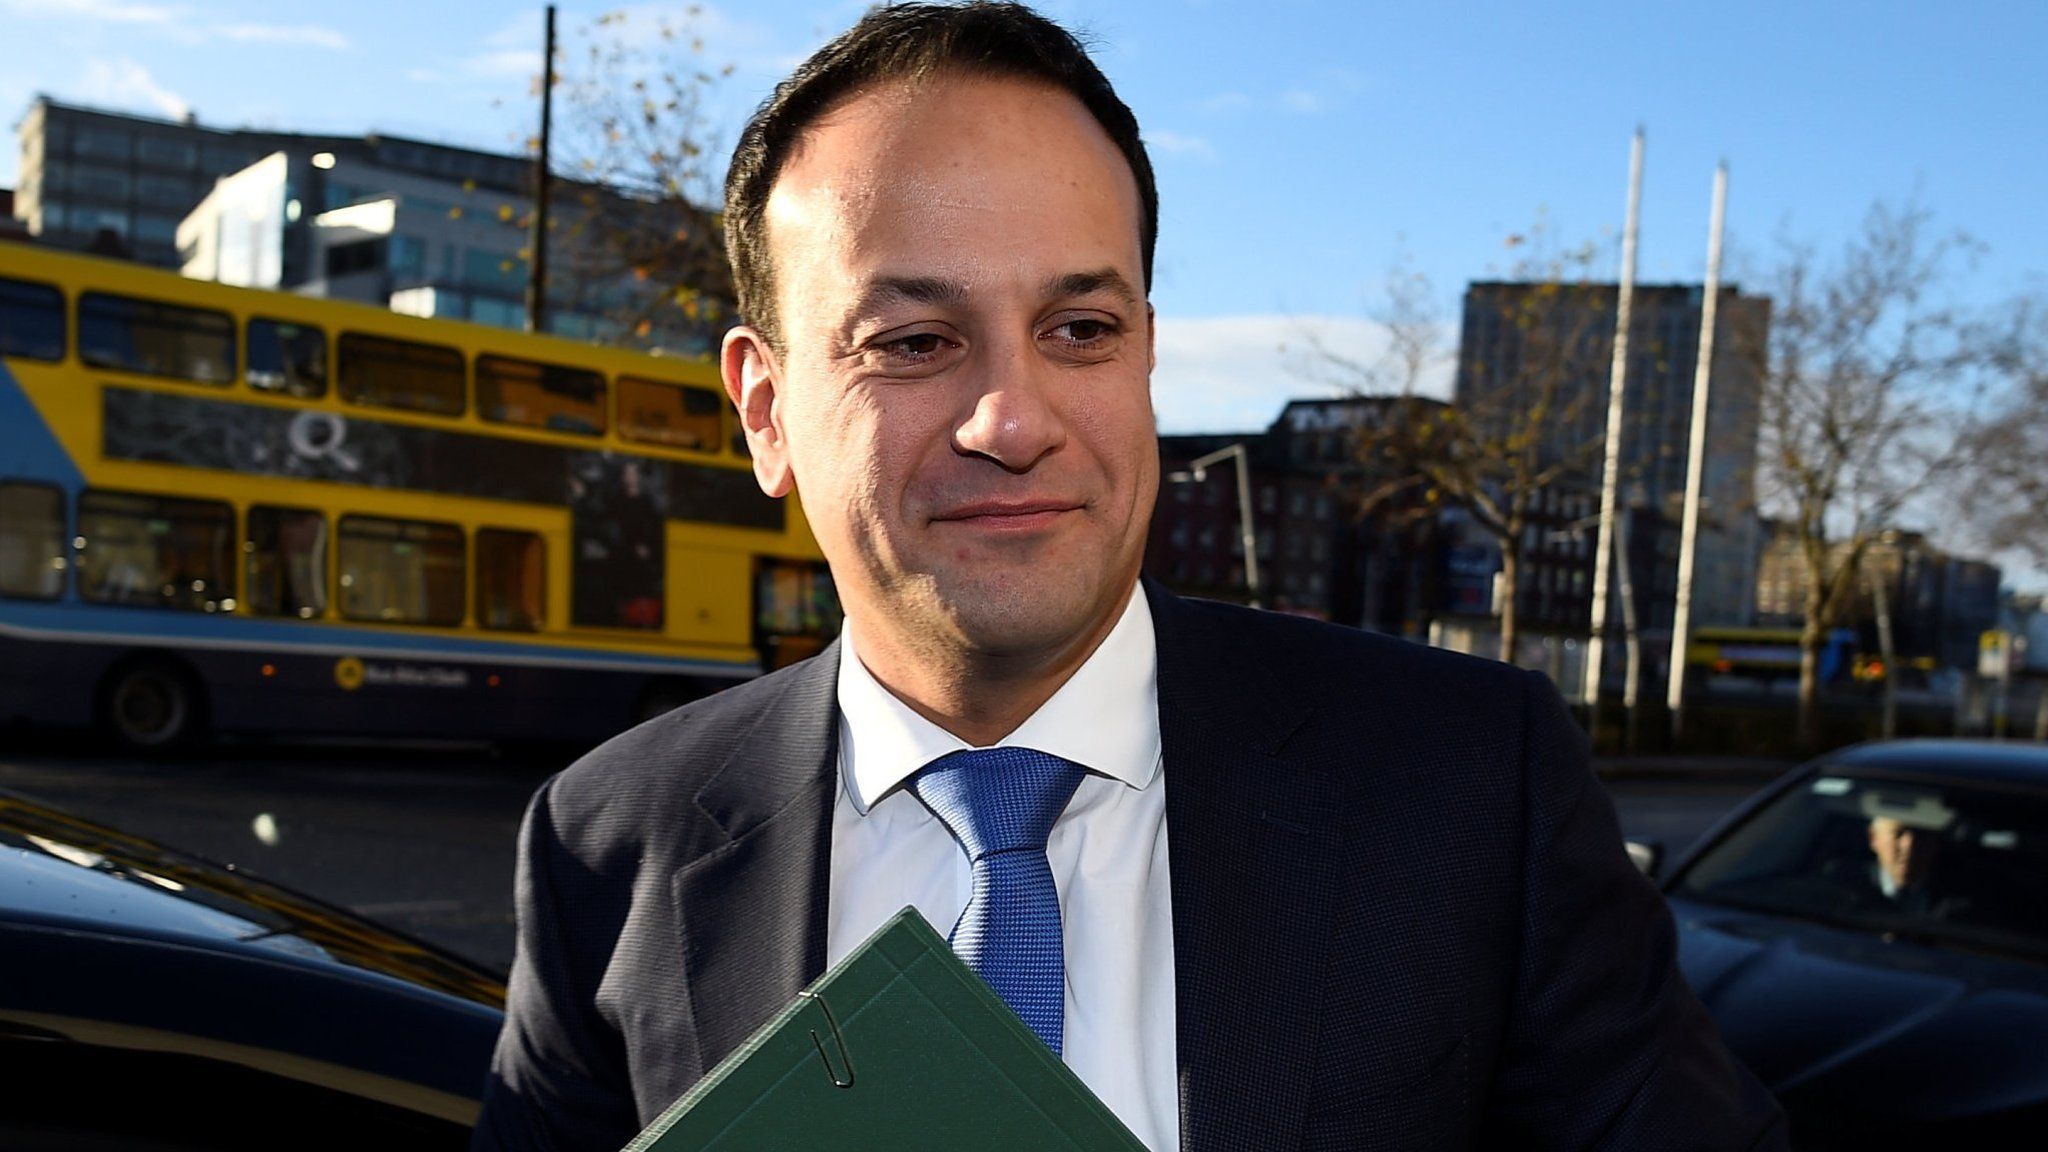 Ireland could face snap election by Christmas